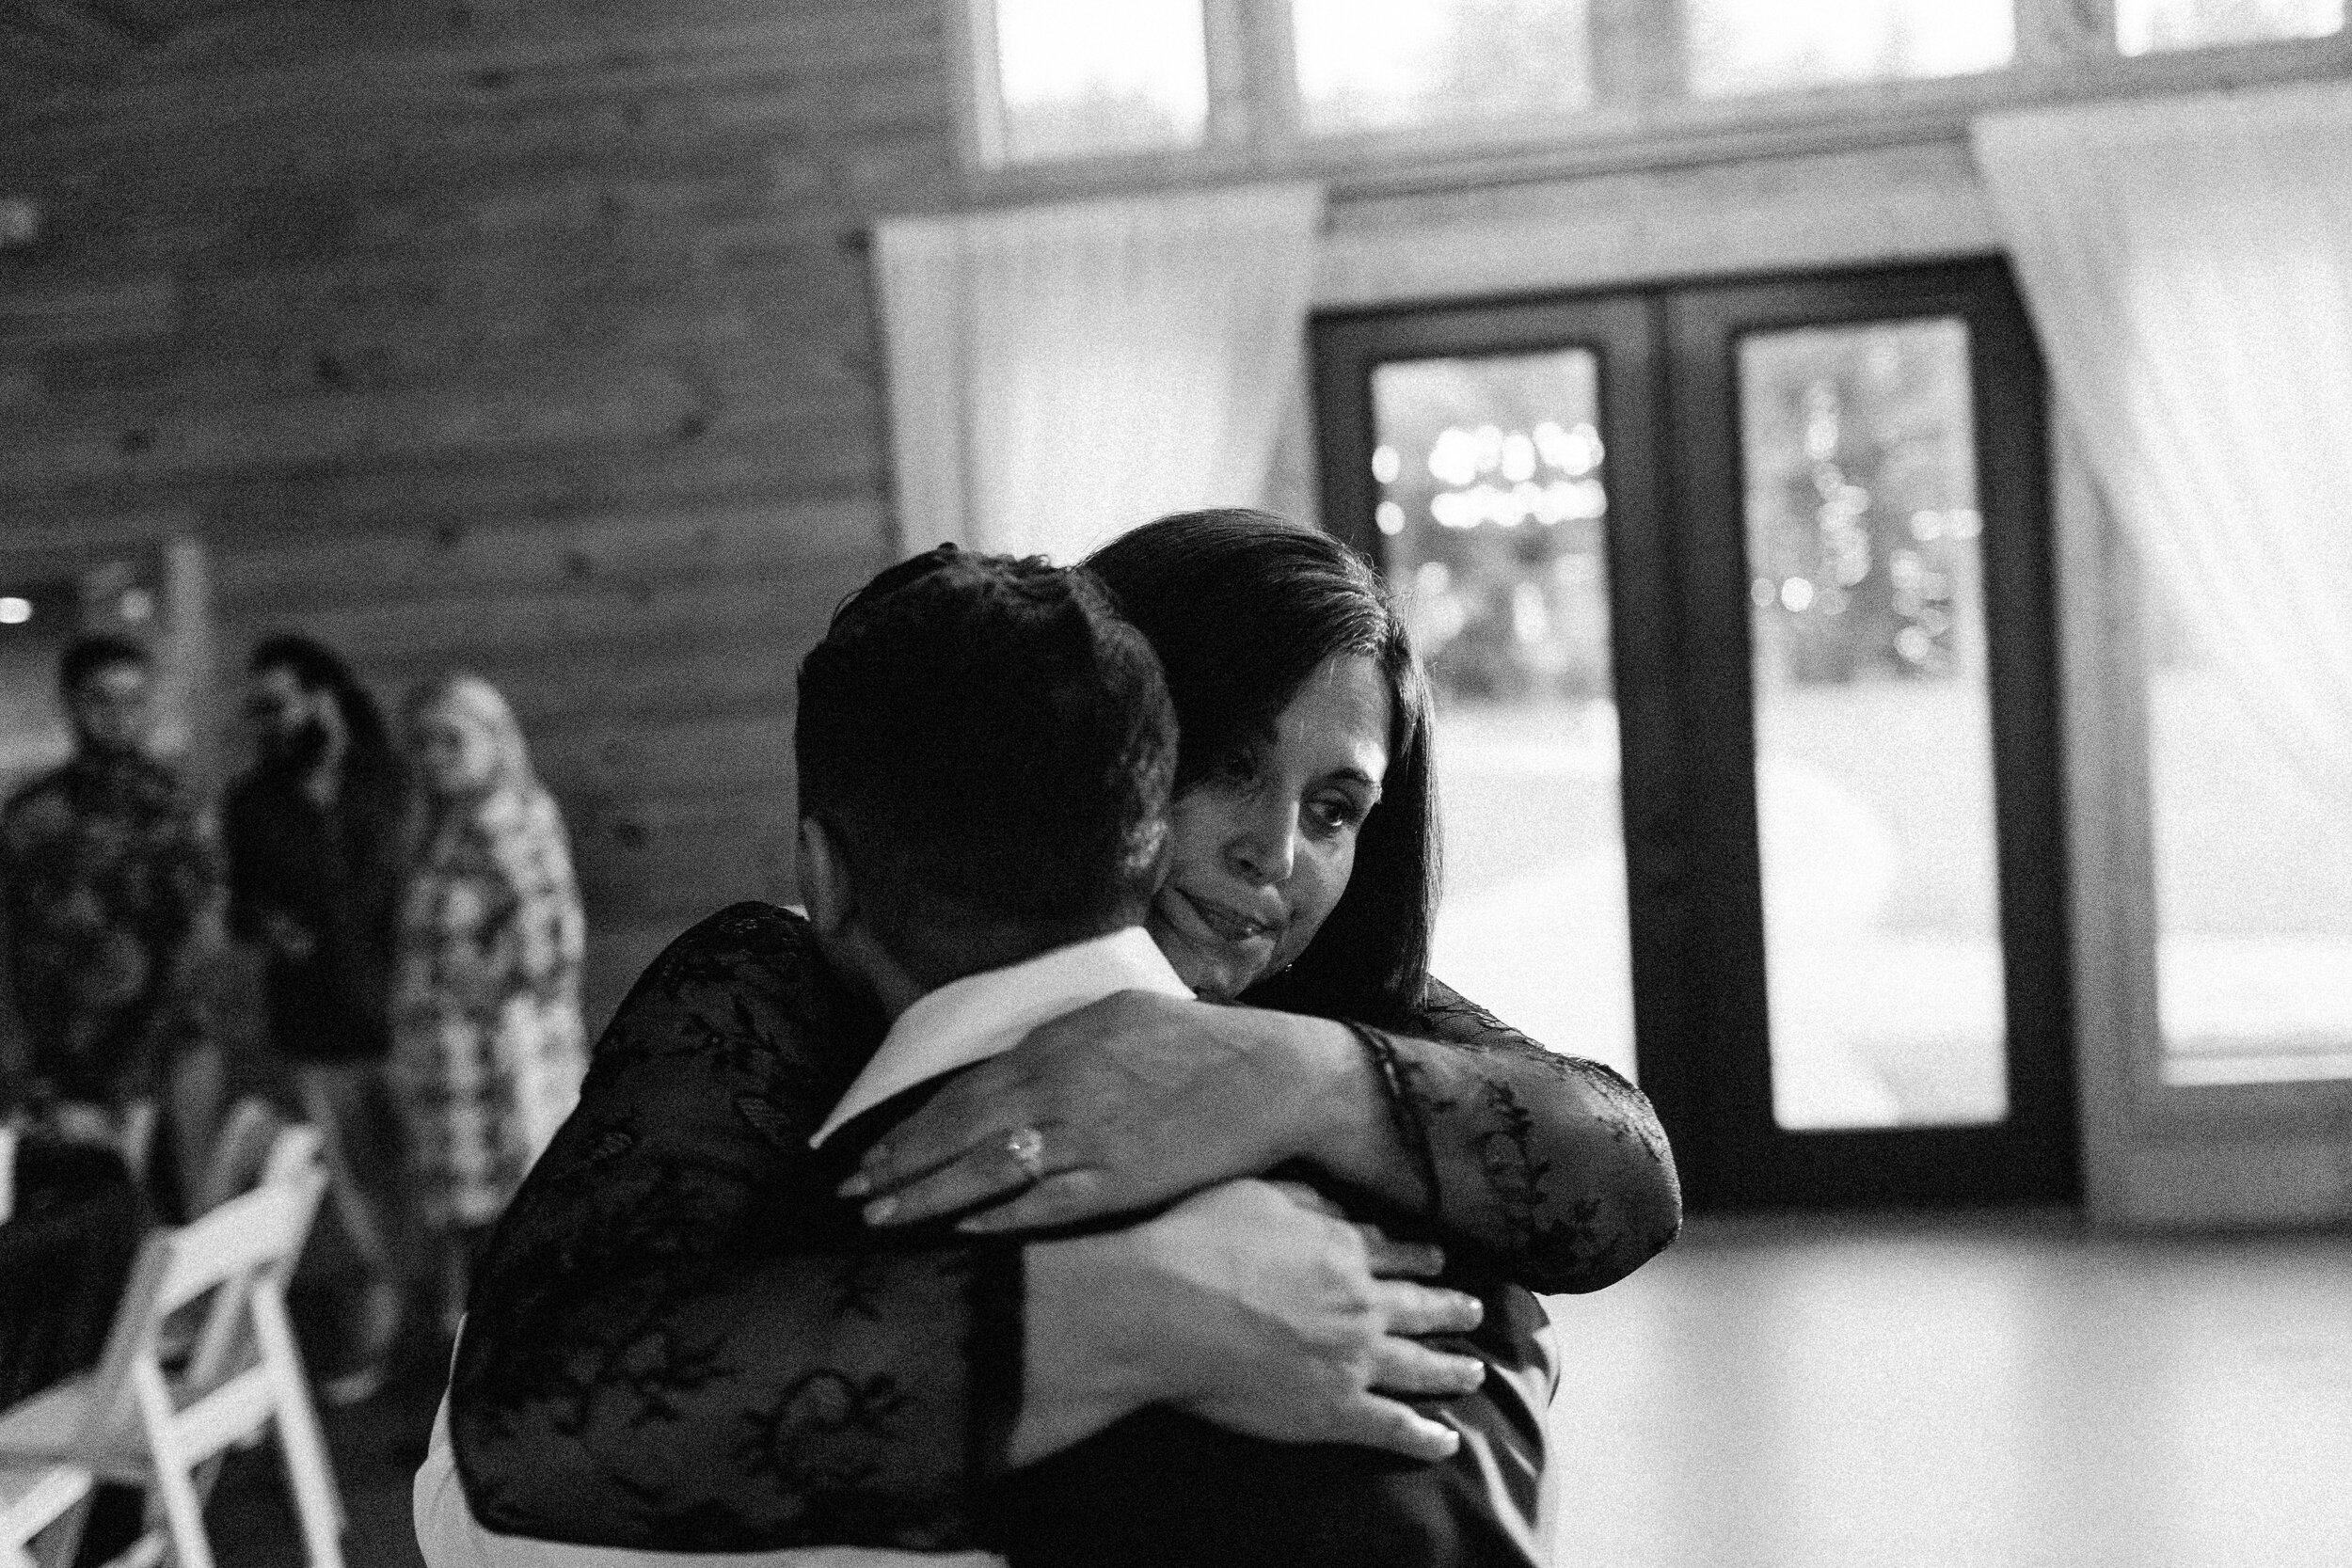 atlanta_wedding_photographers_georgia_same_sex_rustic_barn_farm_lesbian_weddings_inclusive_3243.jpg